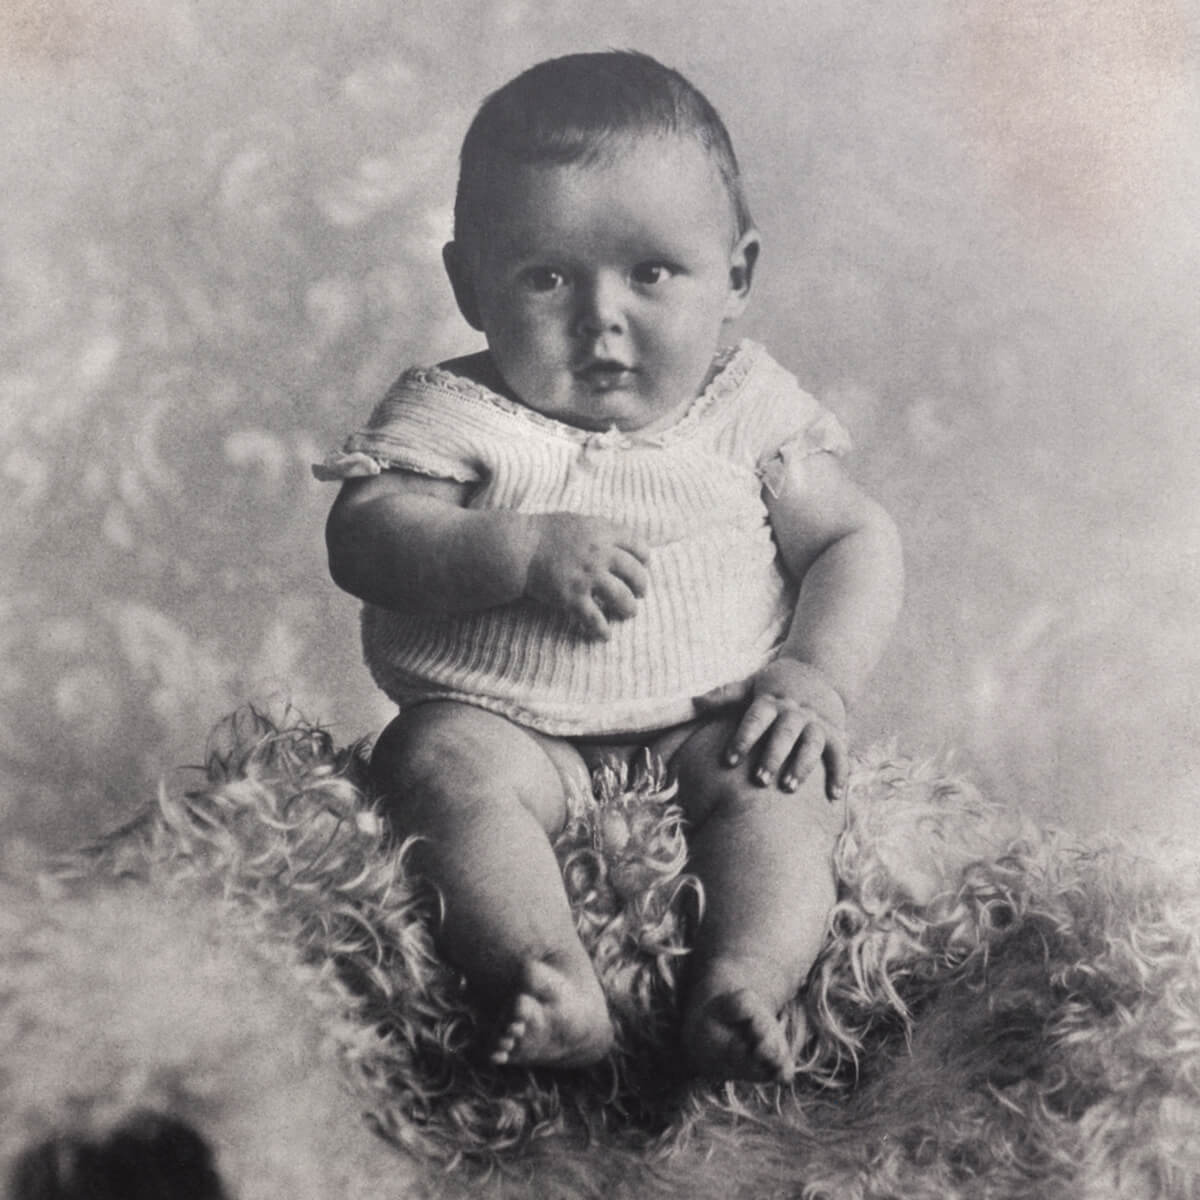 Black and white image of Harry Winston as a baby